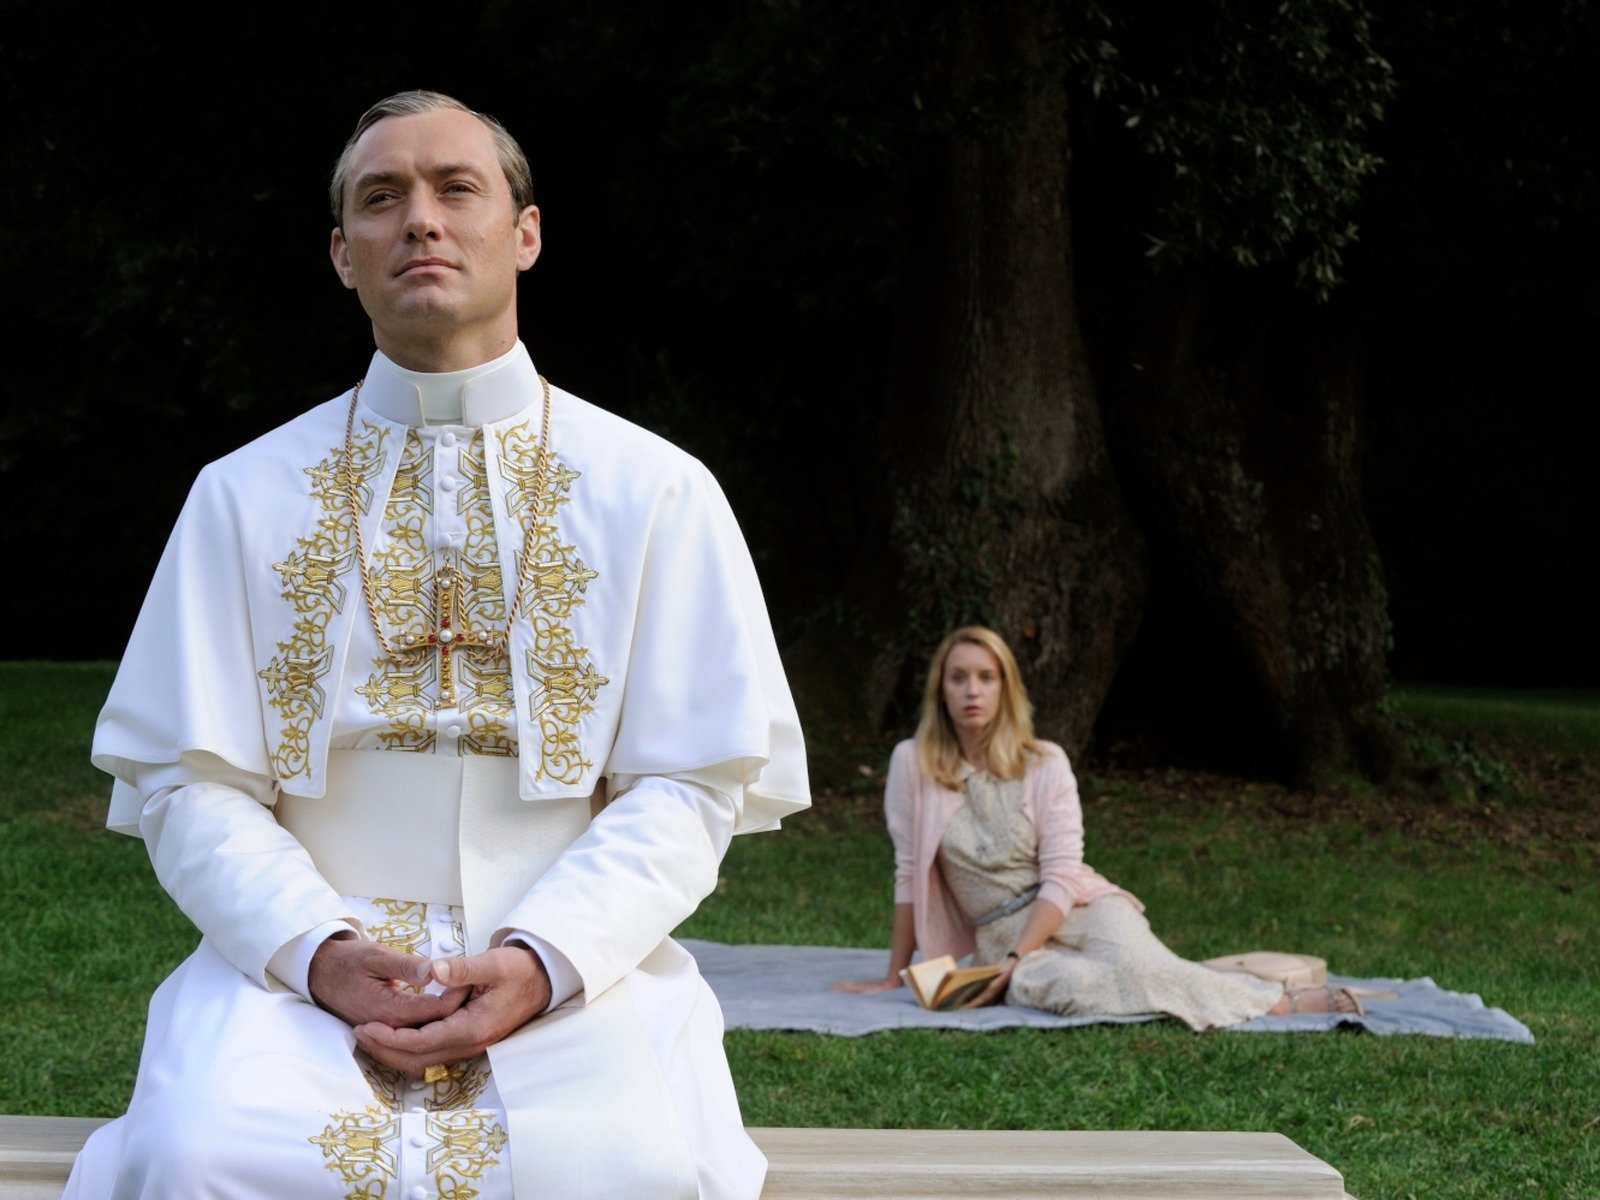 Amazon com: Watch The Young Pope - Season 1   Prime Video